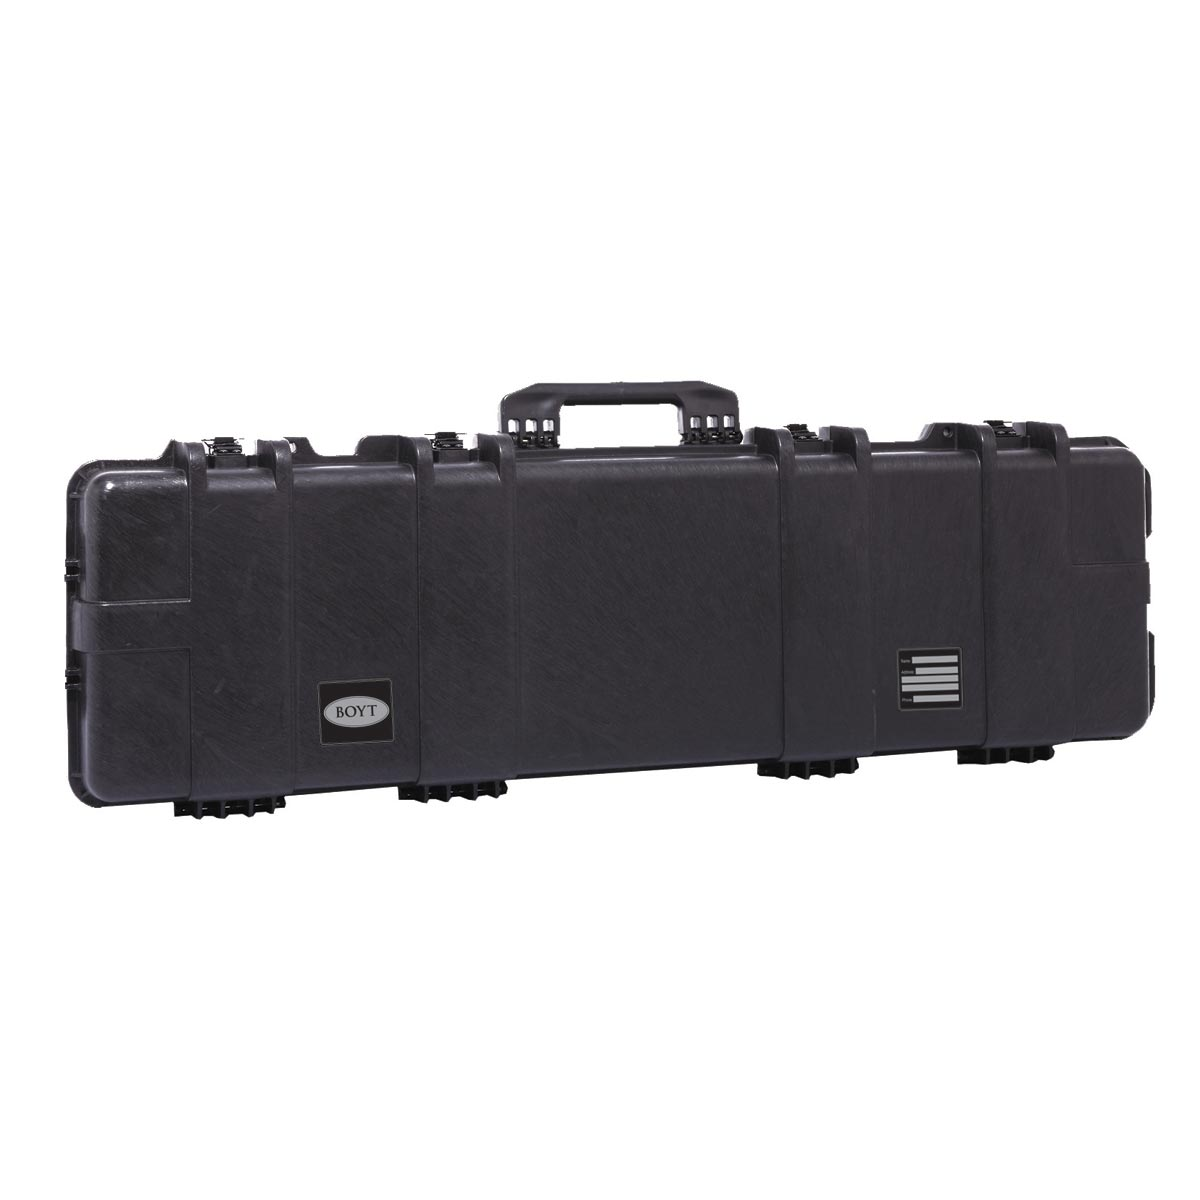 Boyt H-Series H41 Tactical Rifle/Carbine Case - H41